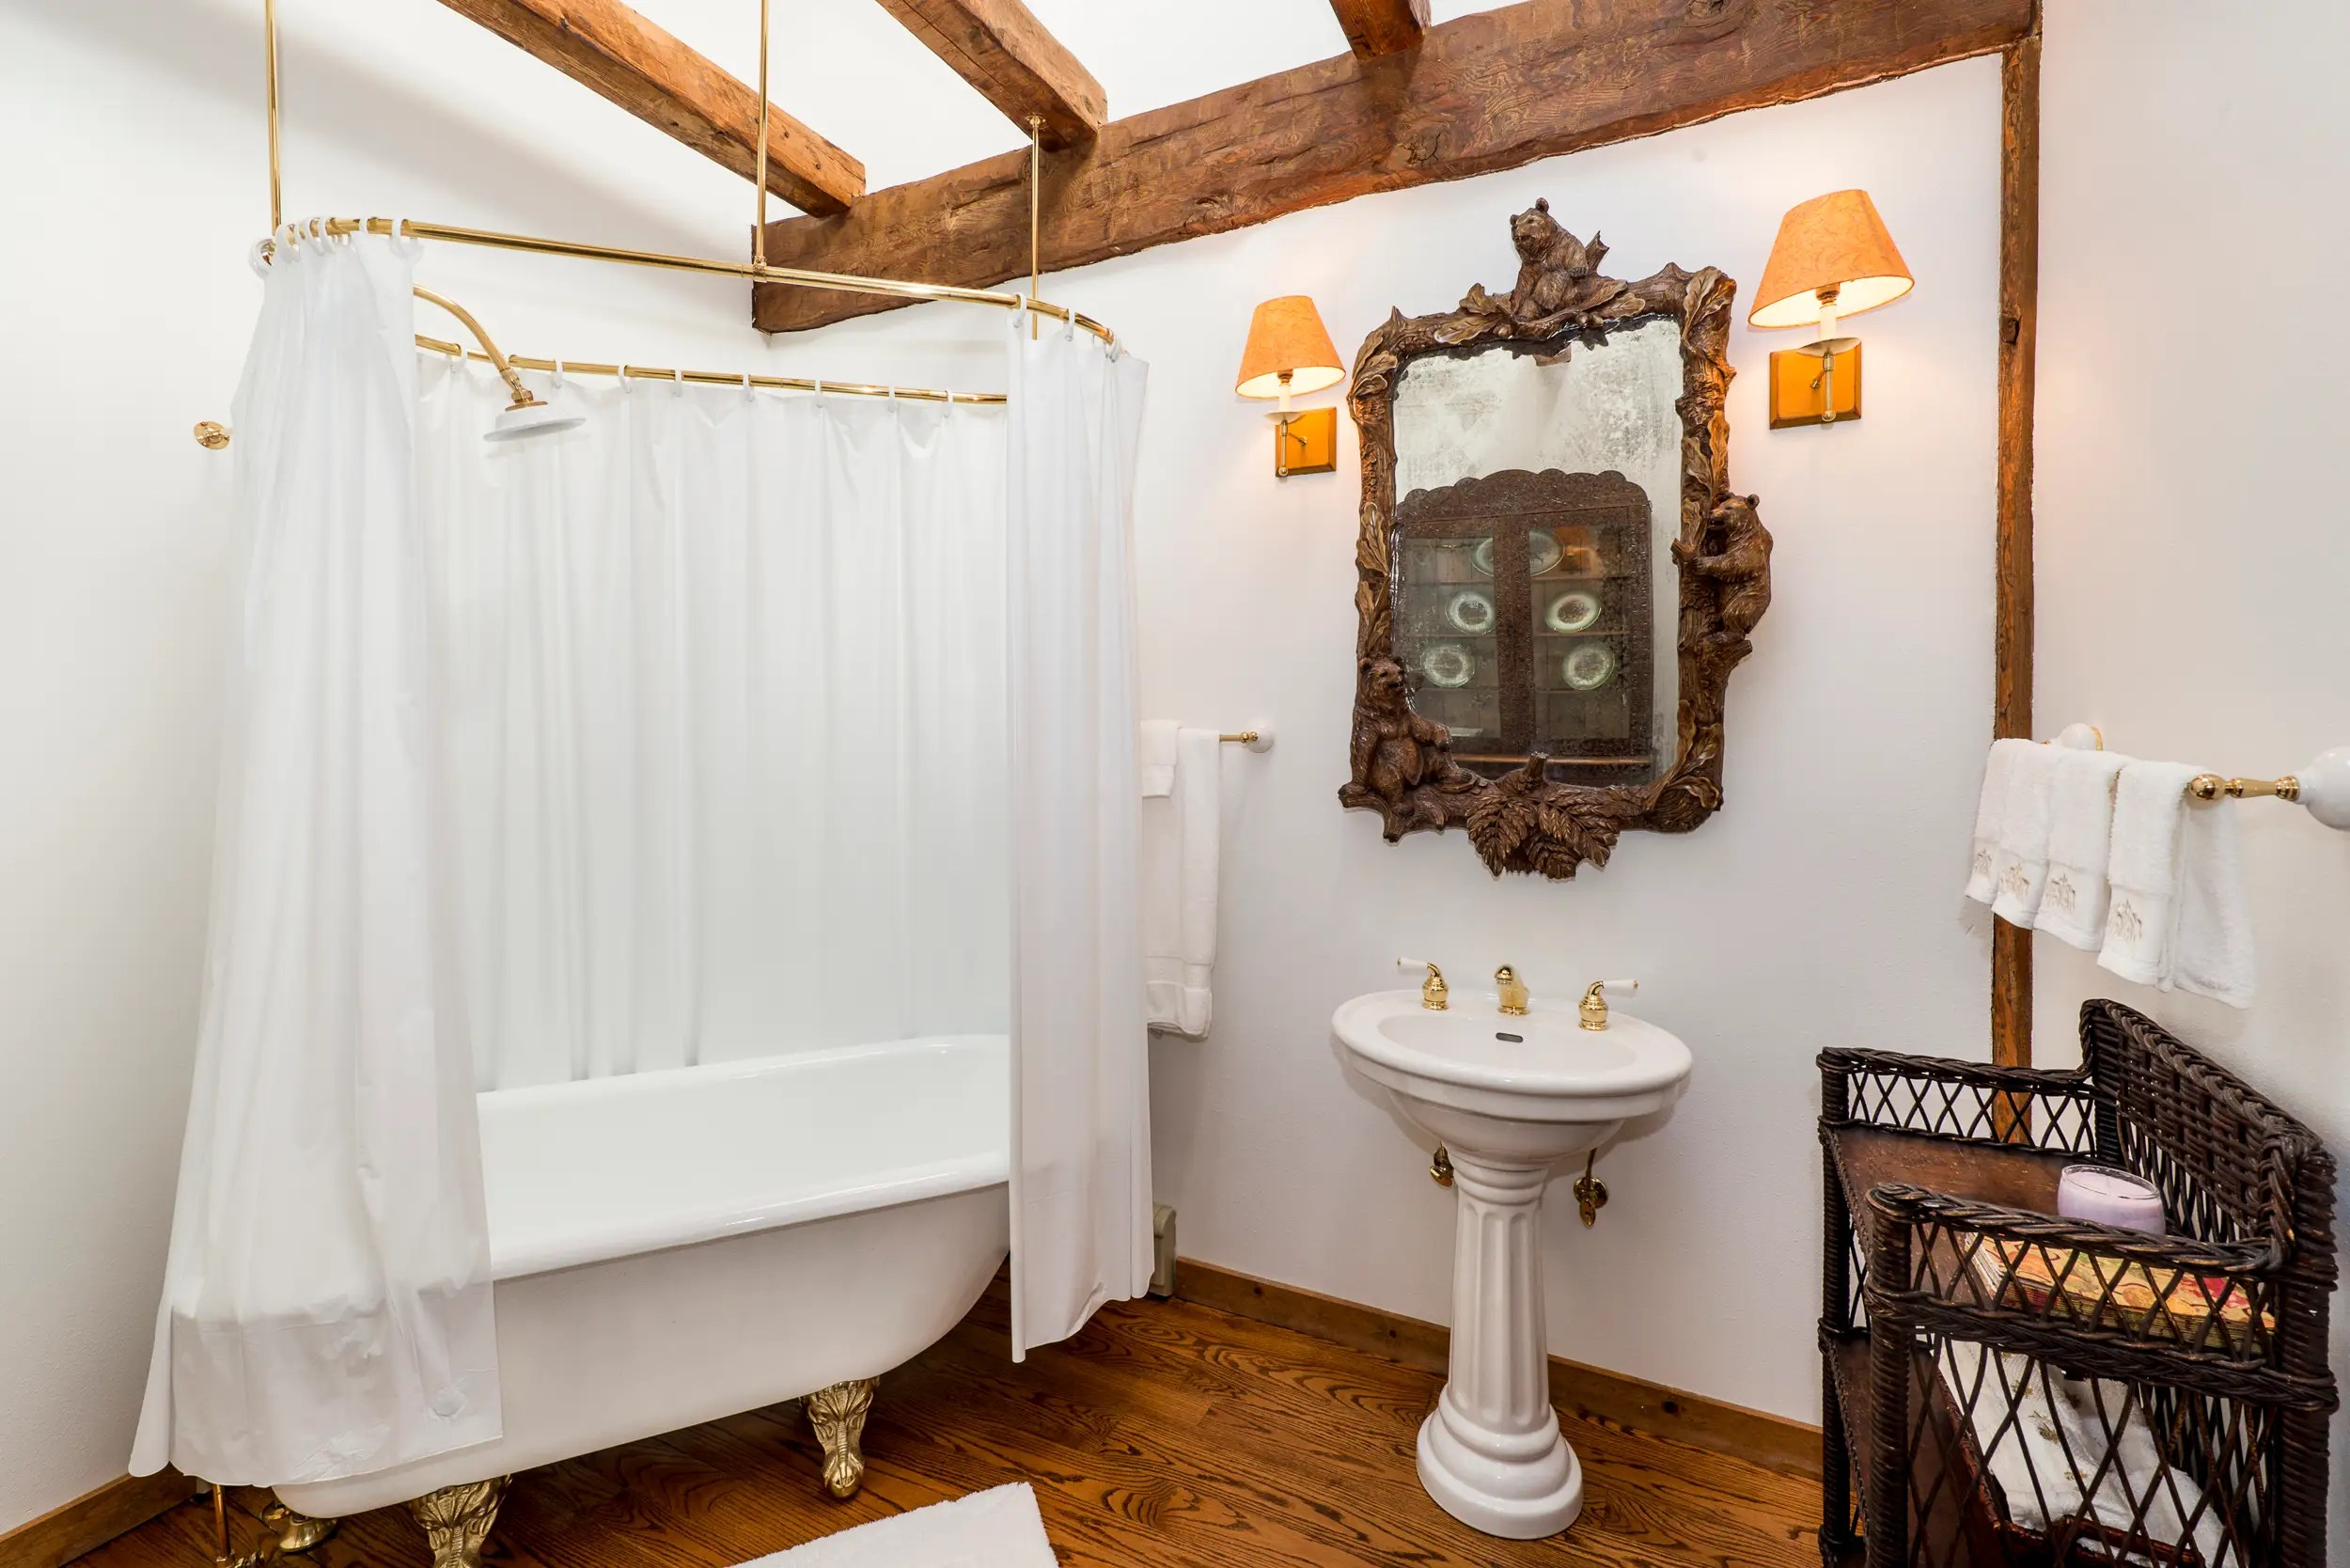 It's old-fashioned, with a freestanding clawfoot tub in one of the bathrooms.